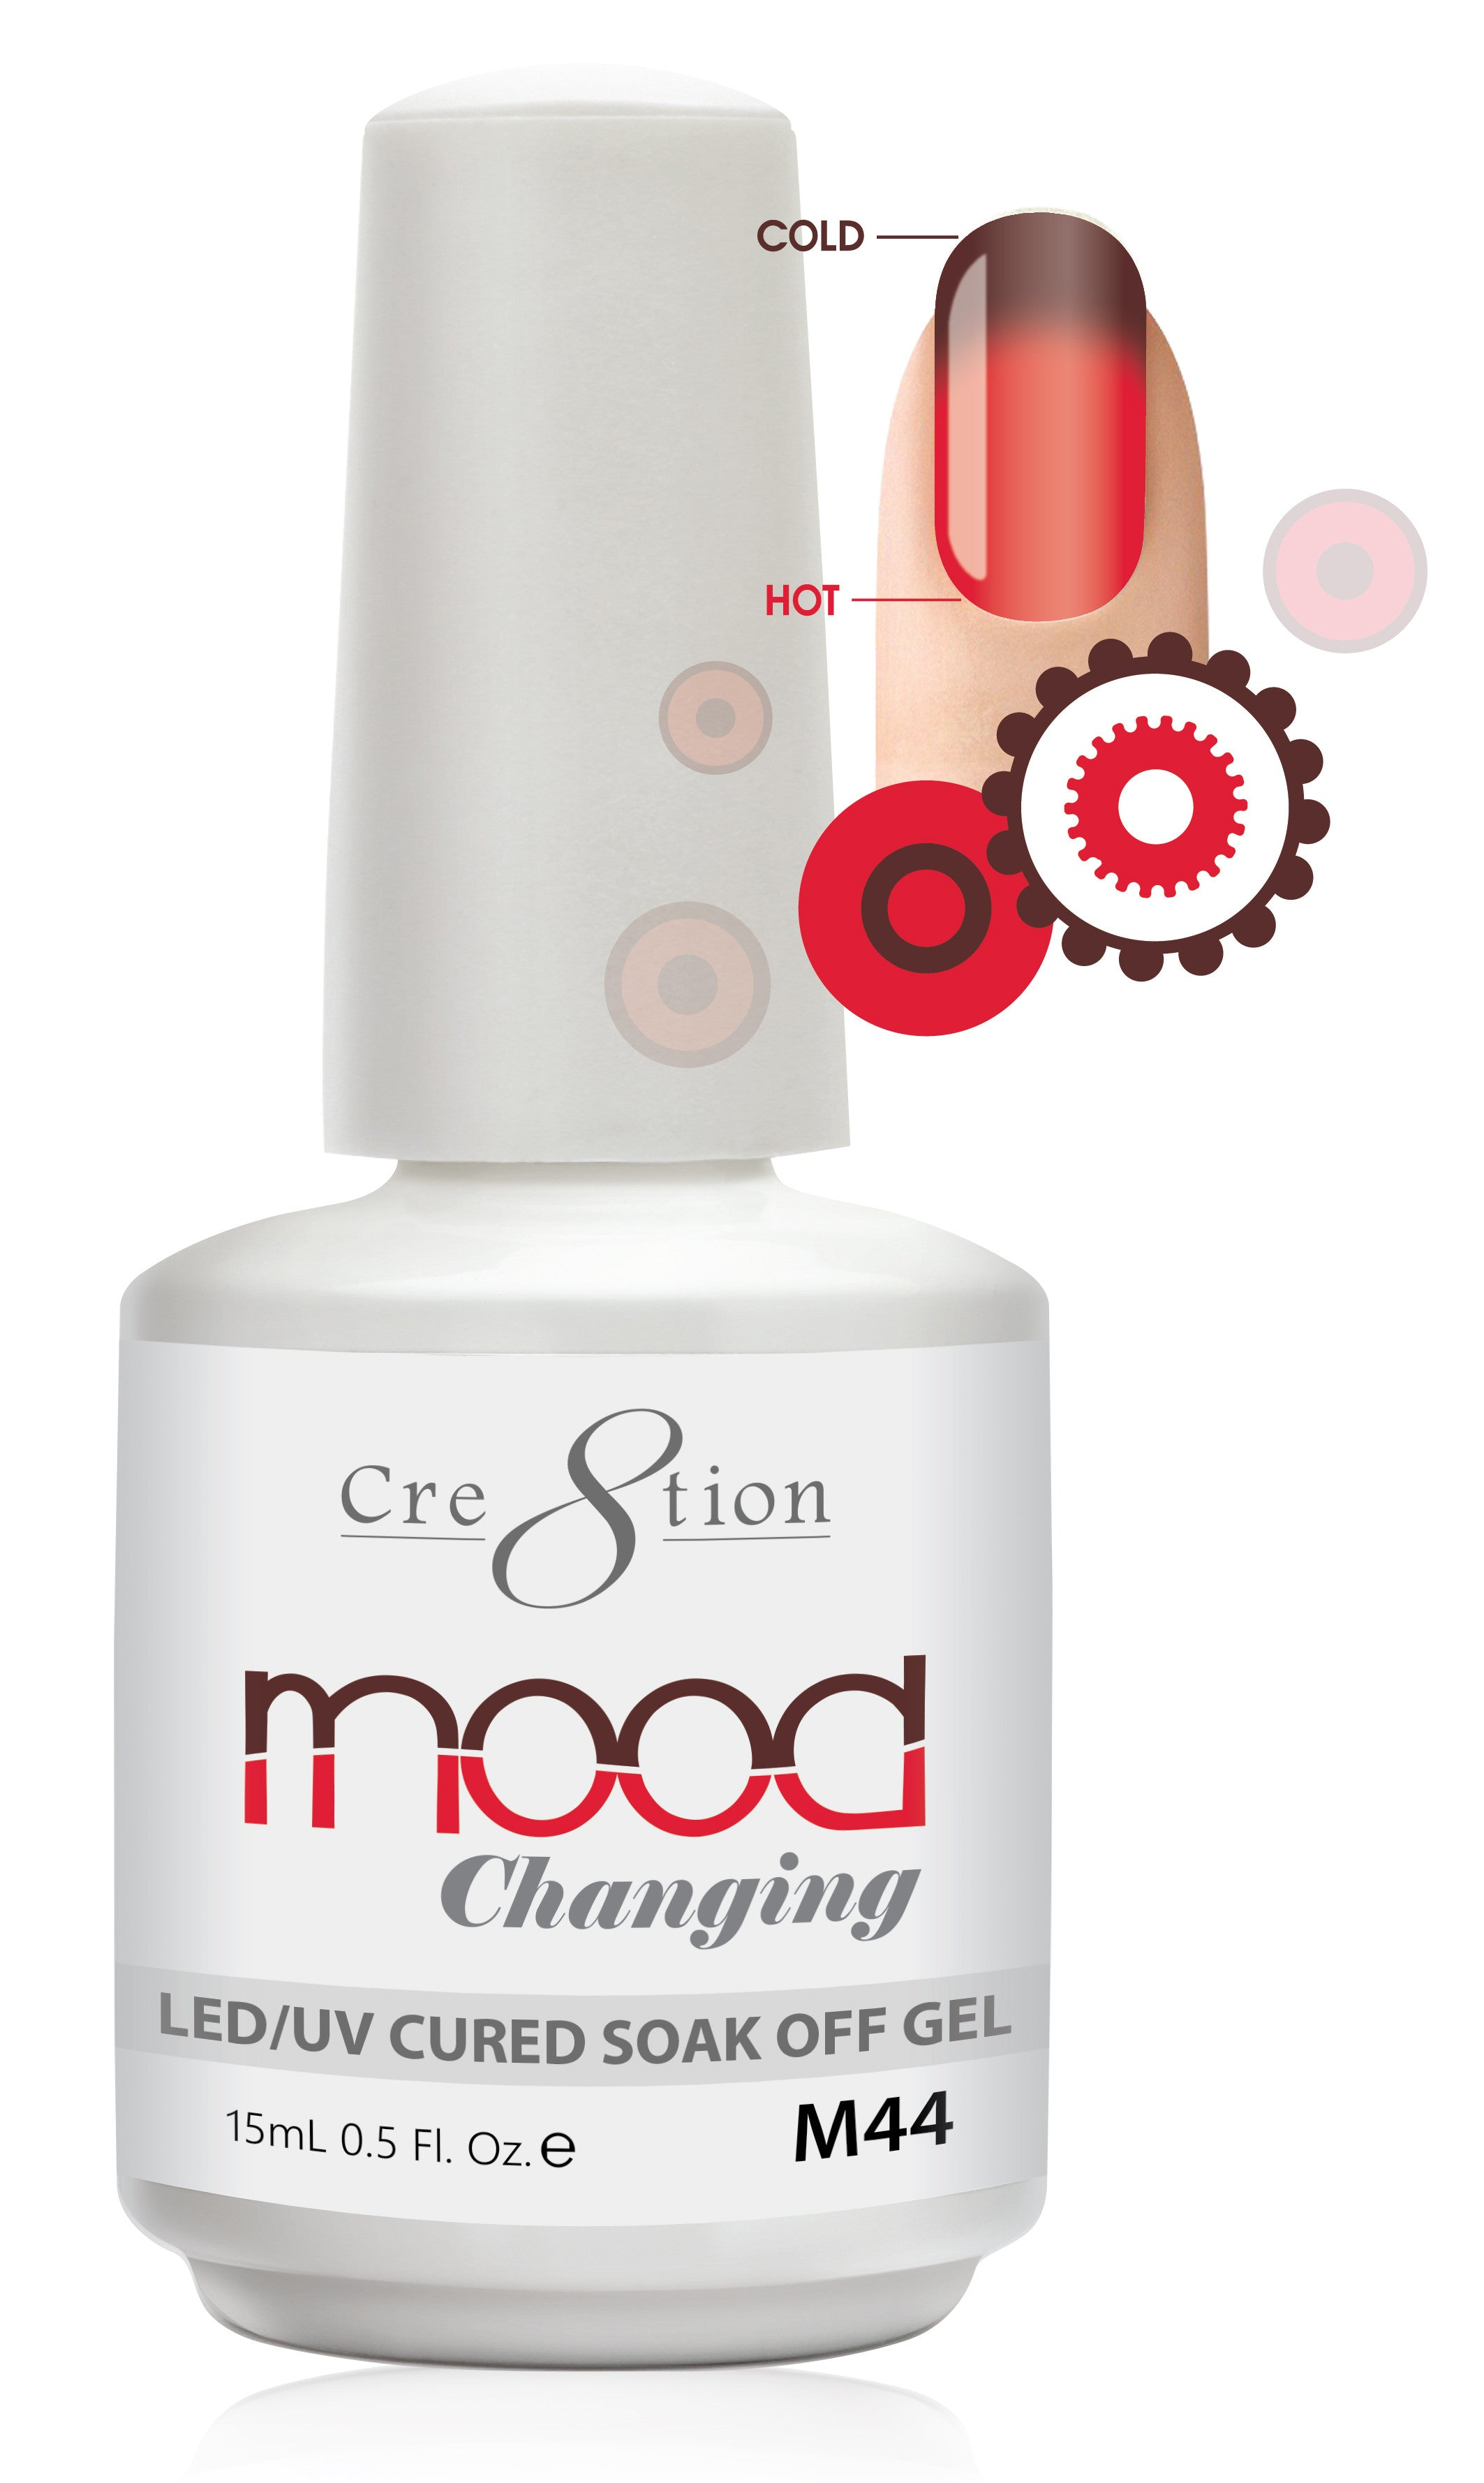 Cre8tion Mood Changing Soak Off Gel M44-Creamy